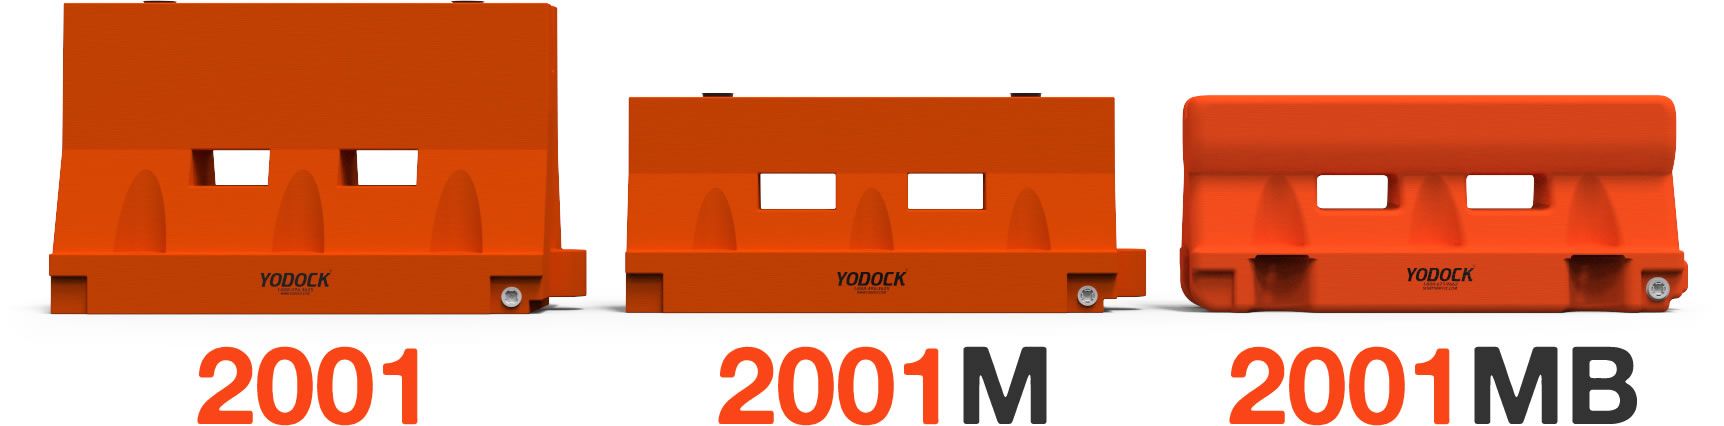 Yodock Barrier Comparison Features 2001, 2001M, 2001MB